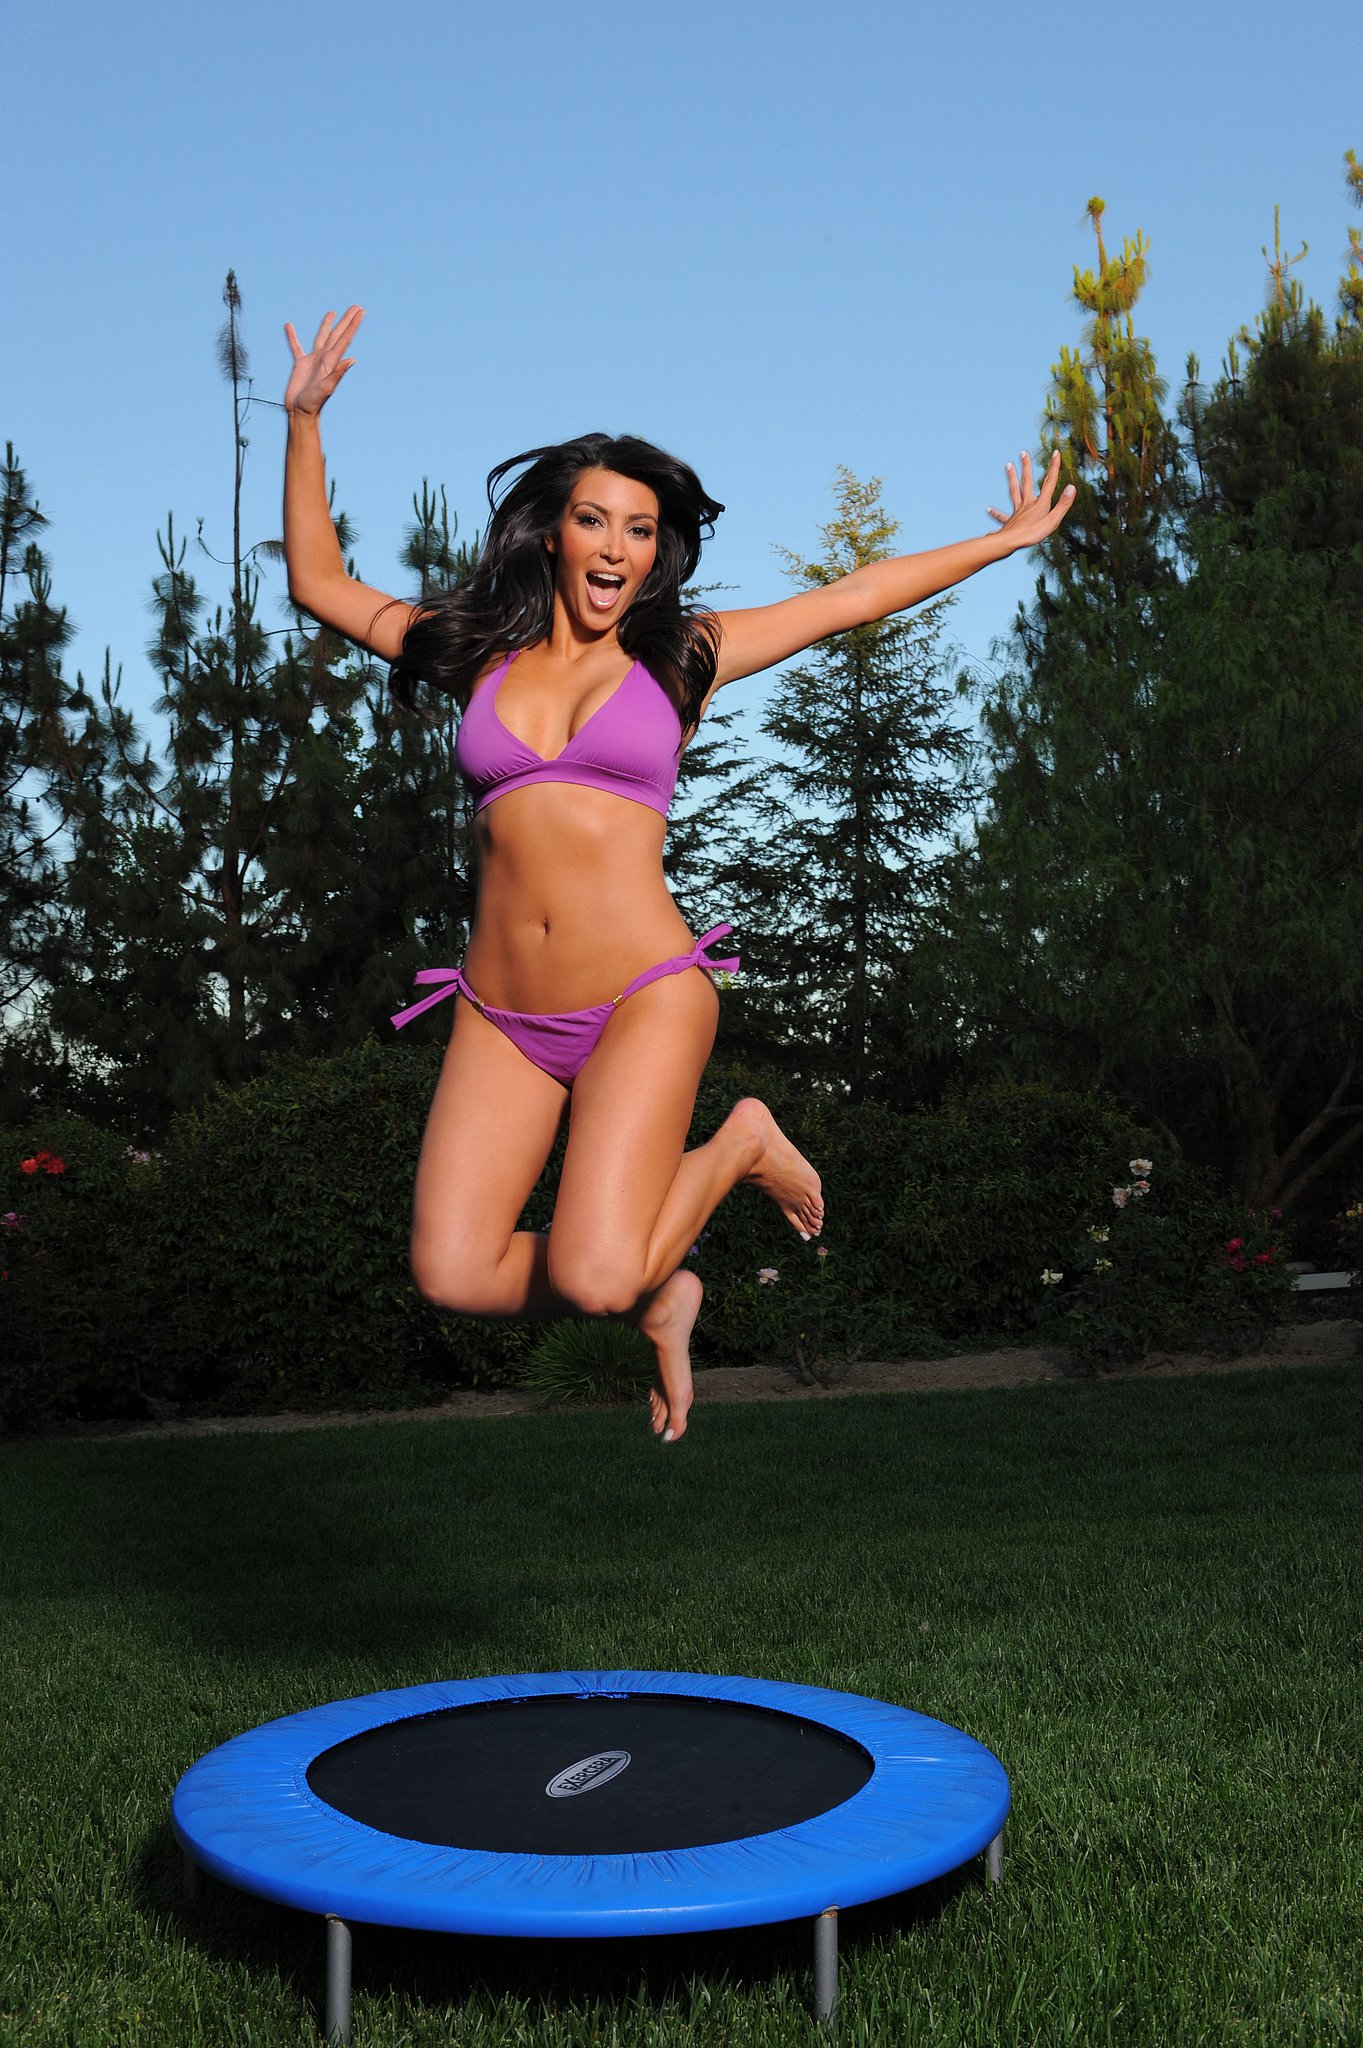 Kim Kardashian got silly on a trampoline during a July 2009 photo shoot in LA.